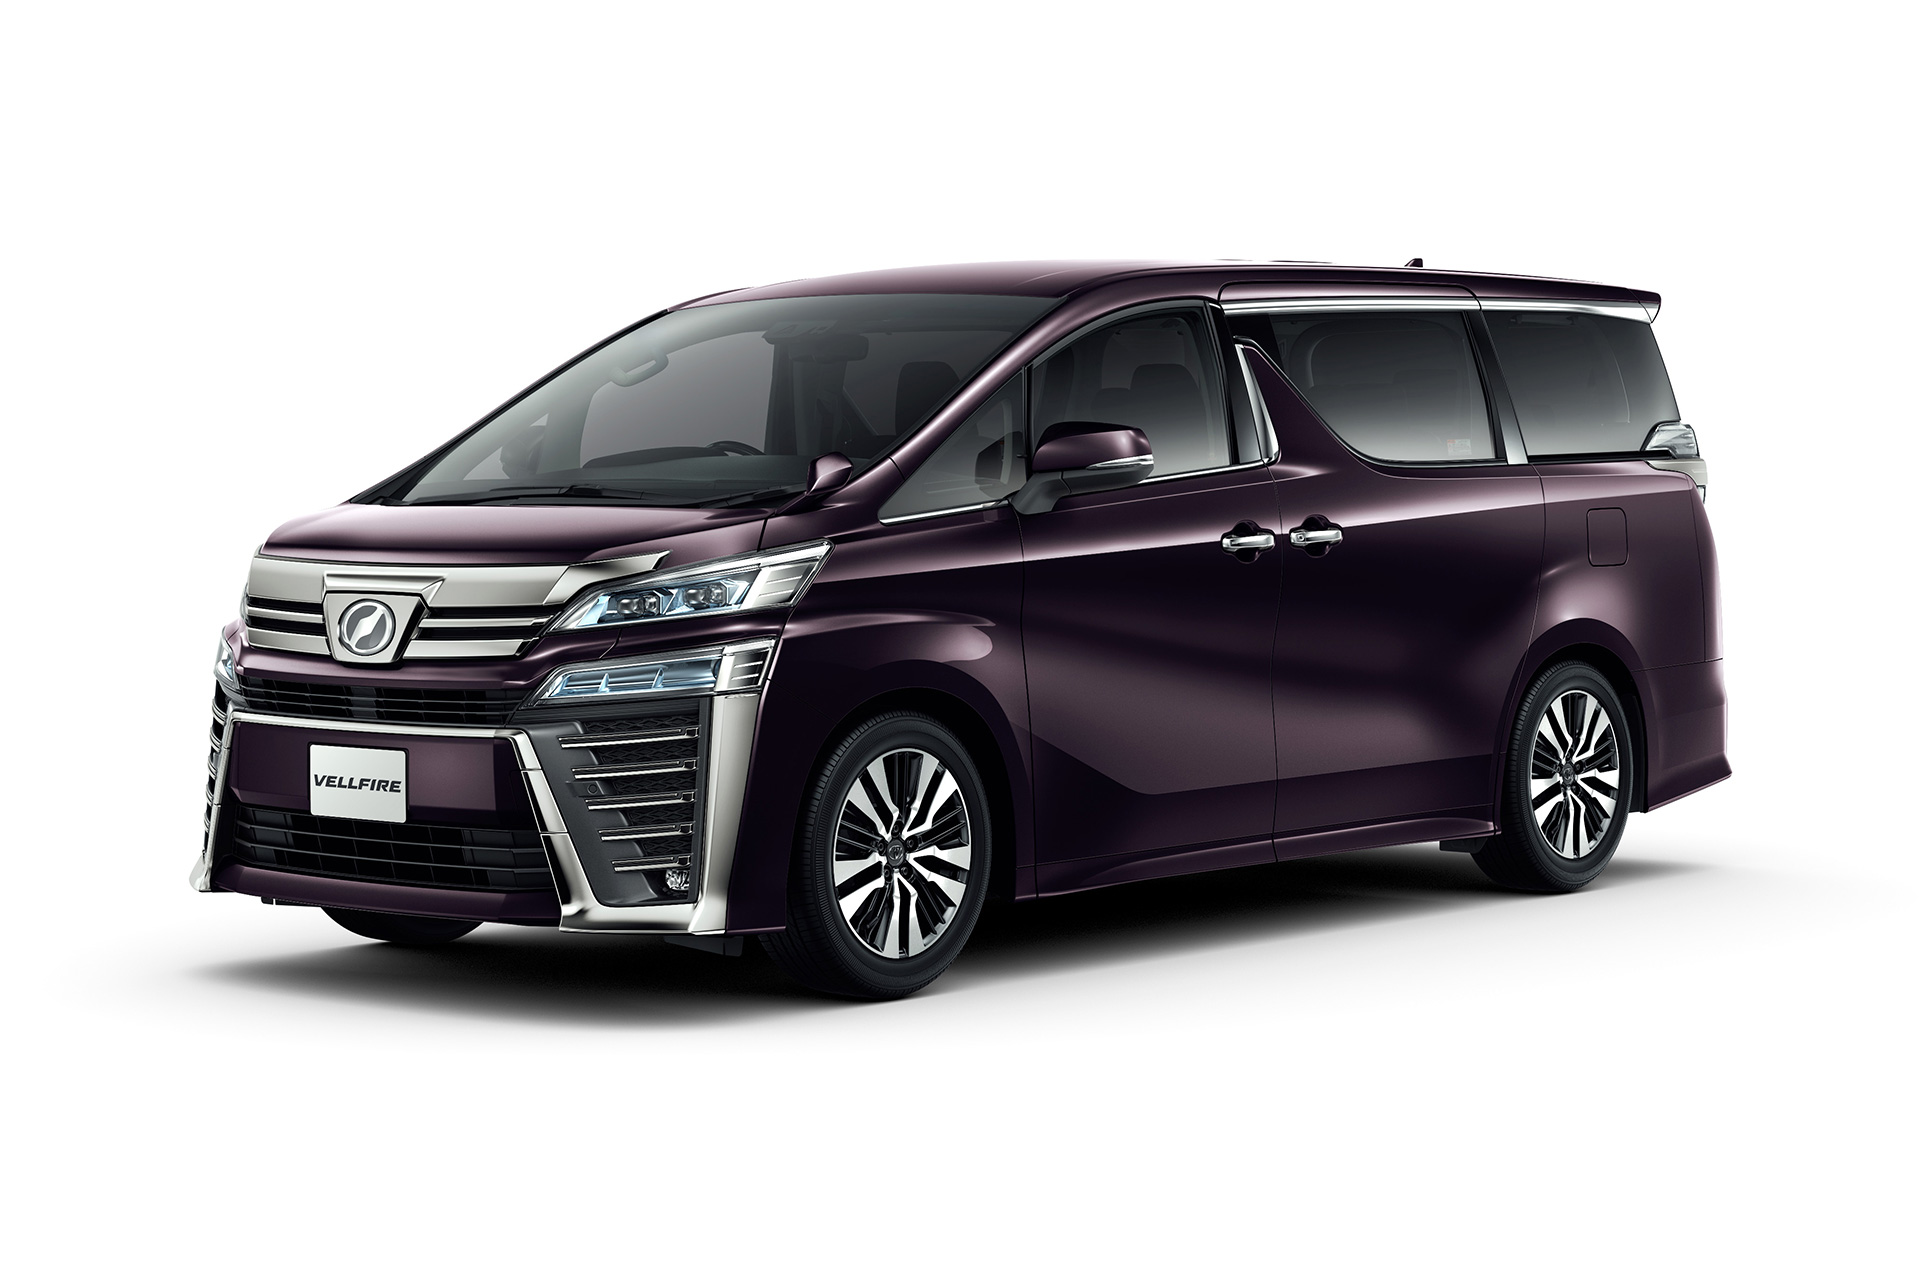 2019 JNCAP Assessment on Toyota Vehicles Announced - Image 3